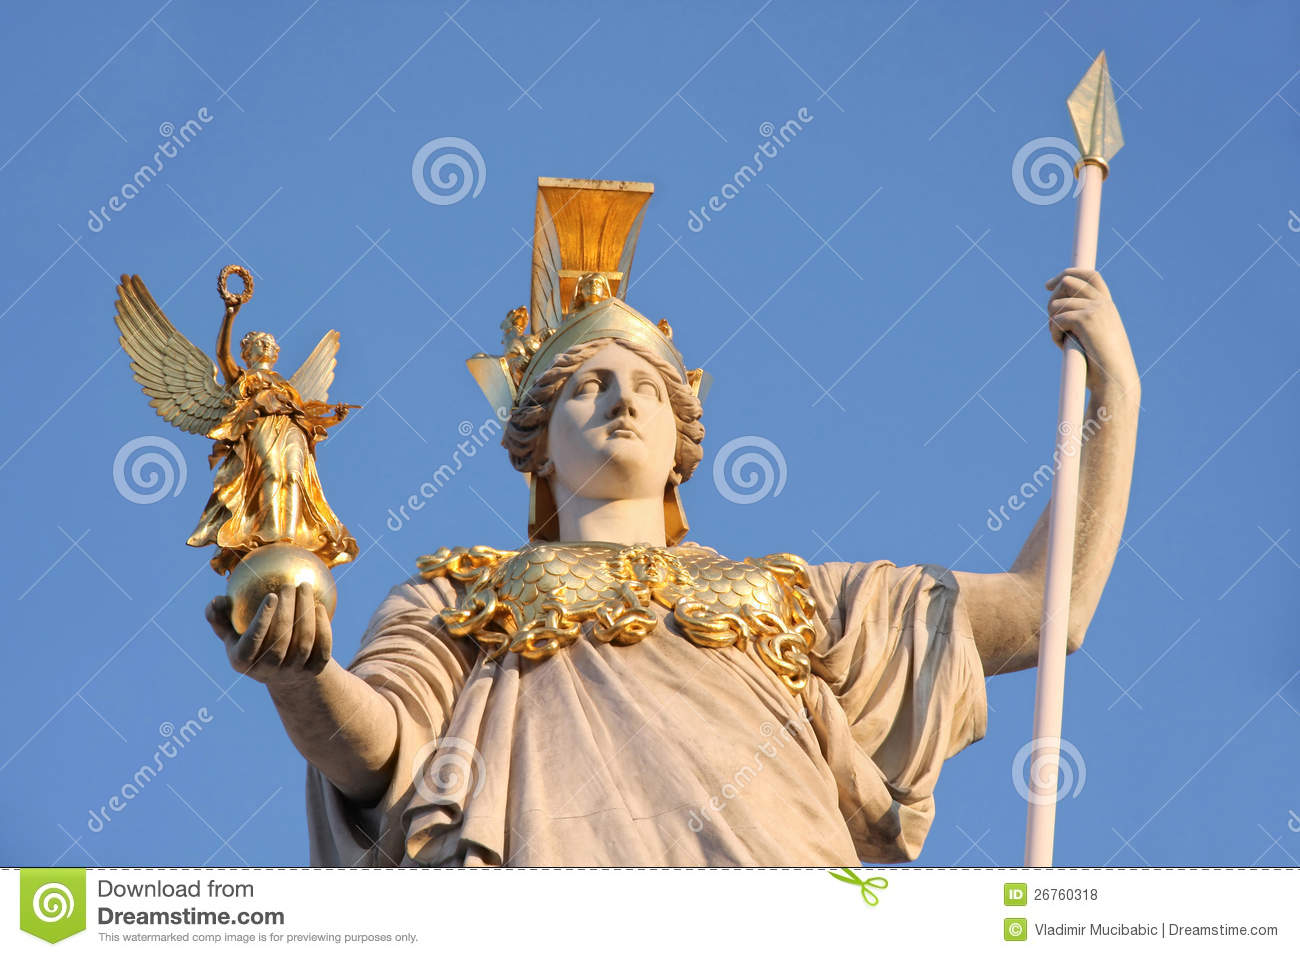 austrian states map with Royalty Free Stock Photos Statue Pallas Athena Vienna Austria Image26760318 on Watch also Historische landkarten additionally Page 2 also Austria River Map additionally Royalty Free Stock Image Billboard Along Gerlos Pass Austria Mountain Austrian Alps Oberpinzgau Region State Salzburg Image32510946.